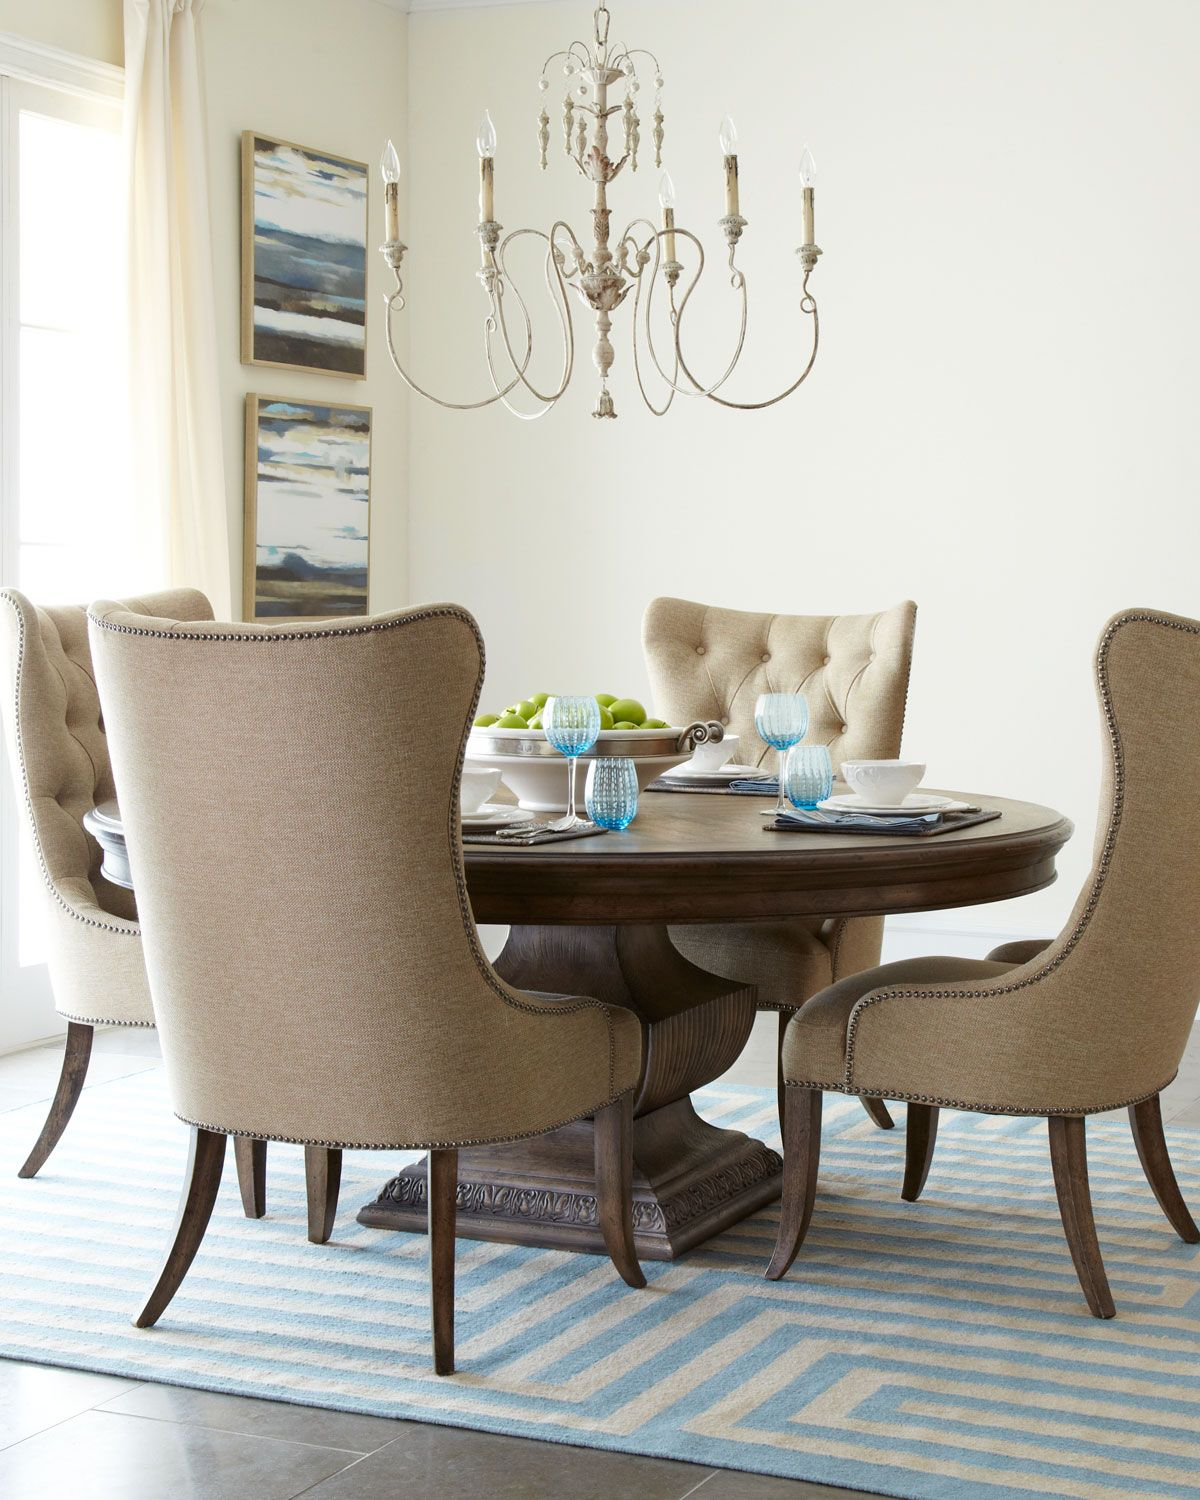 Donabella Dining Furniture with Round Table Donabella